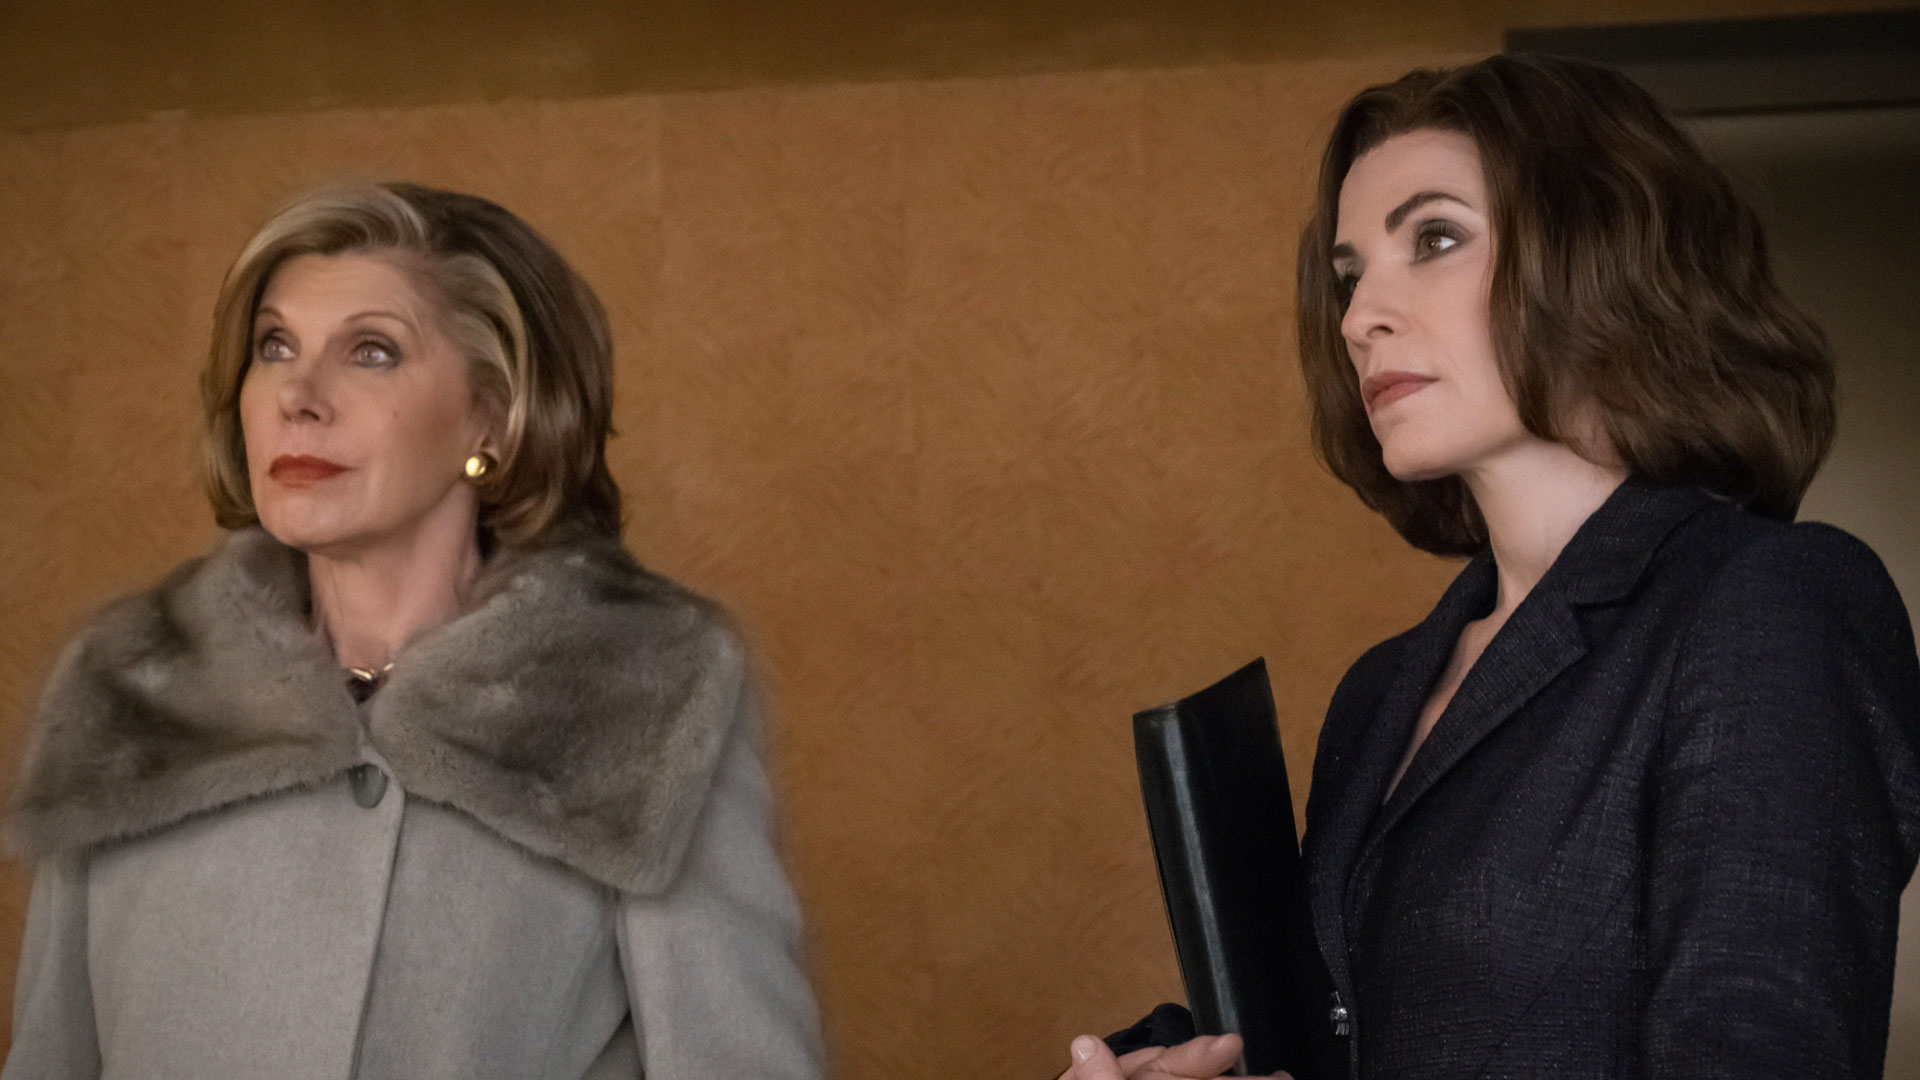 Christine Baranski as Diane Lockhart and Julianna Margulies as Alicia Florrick